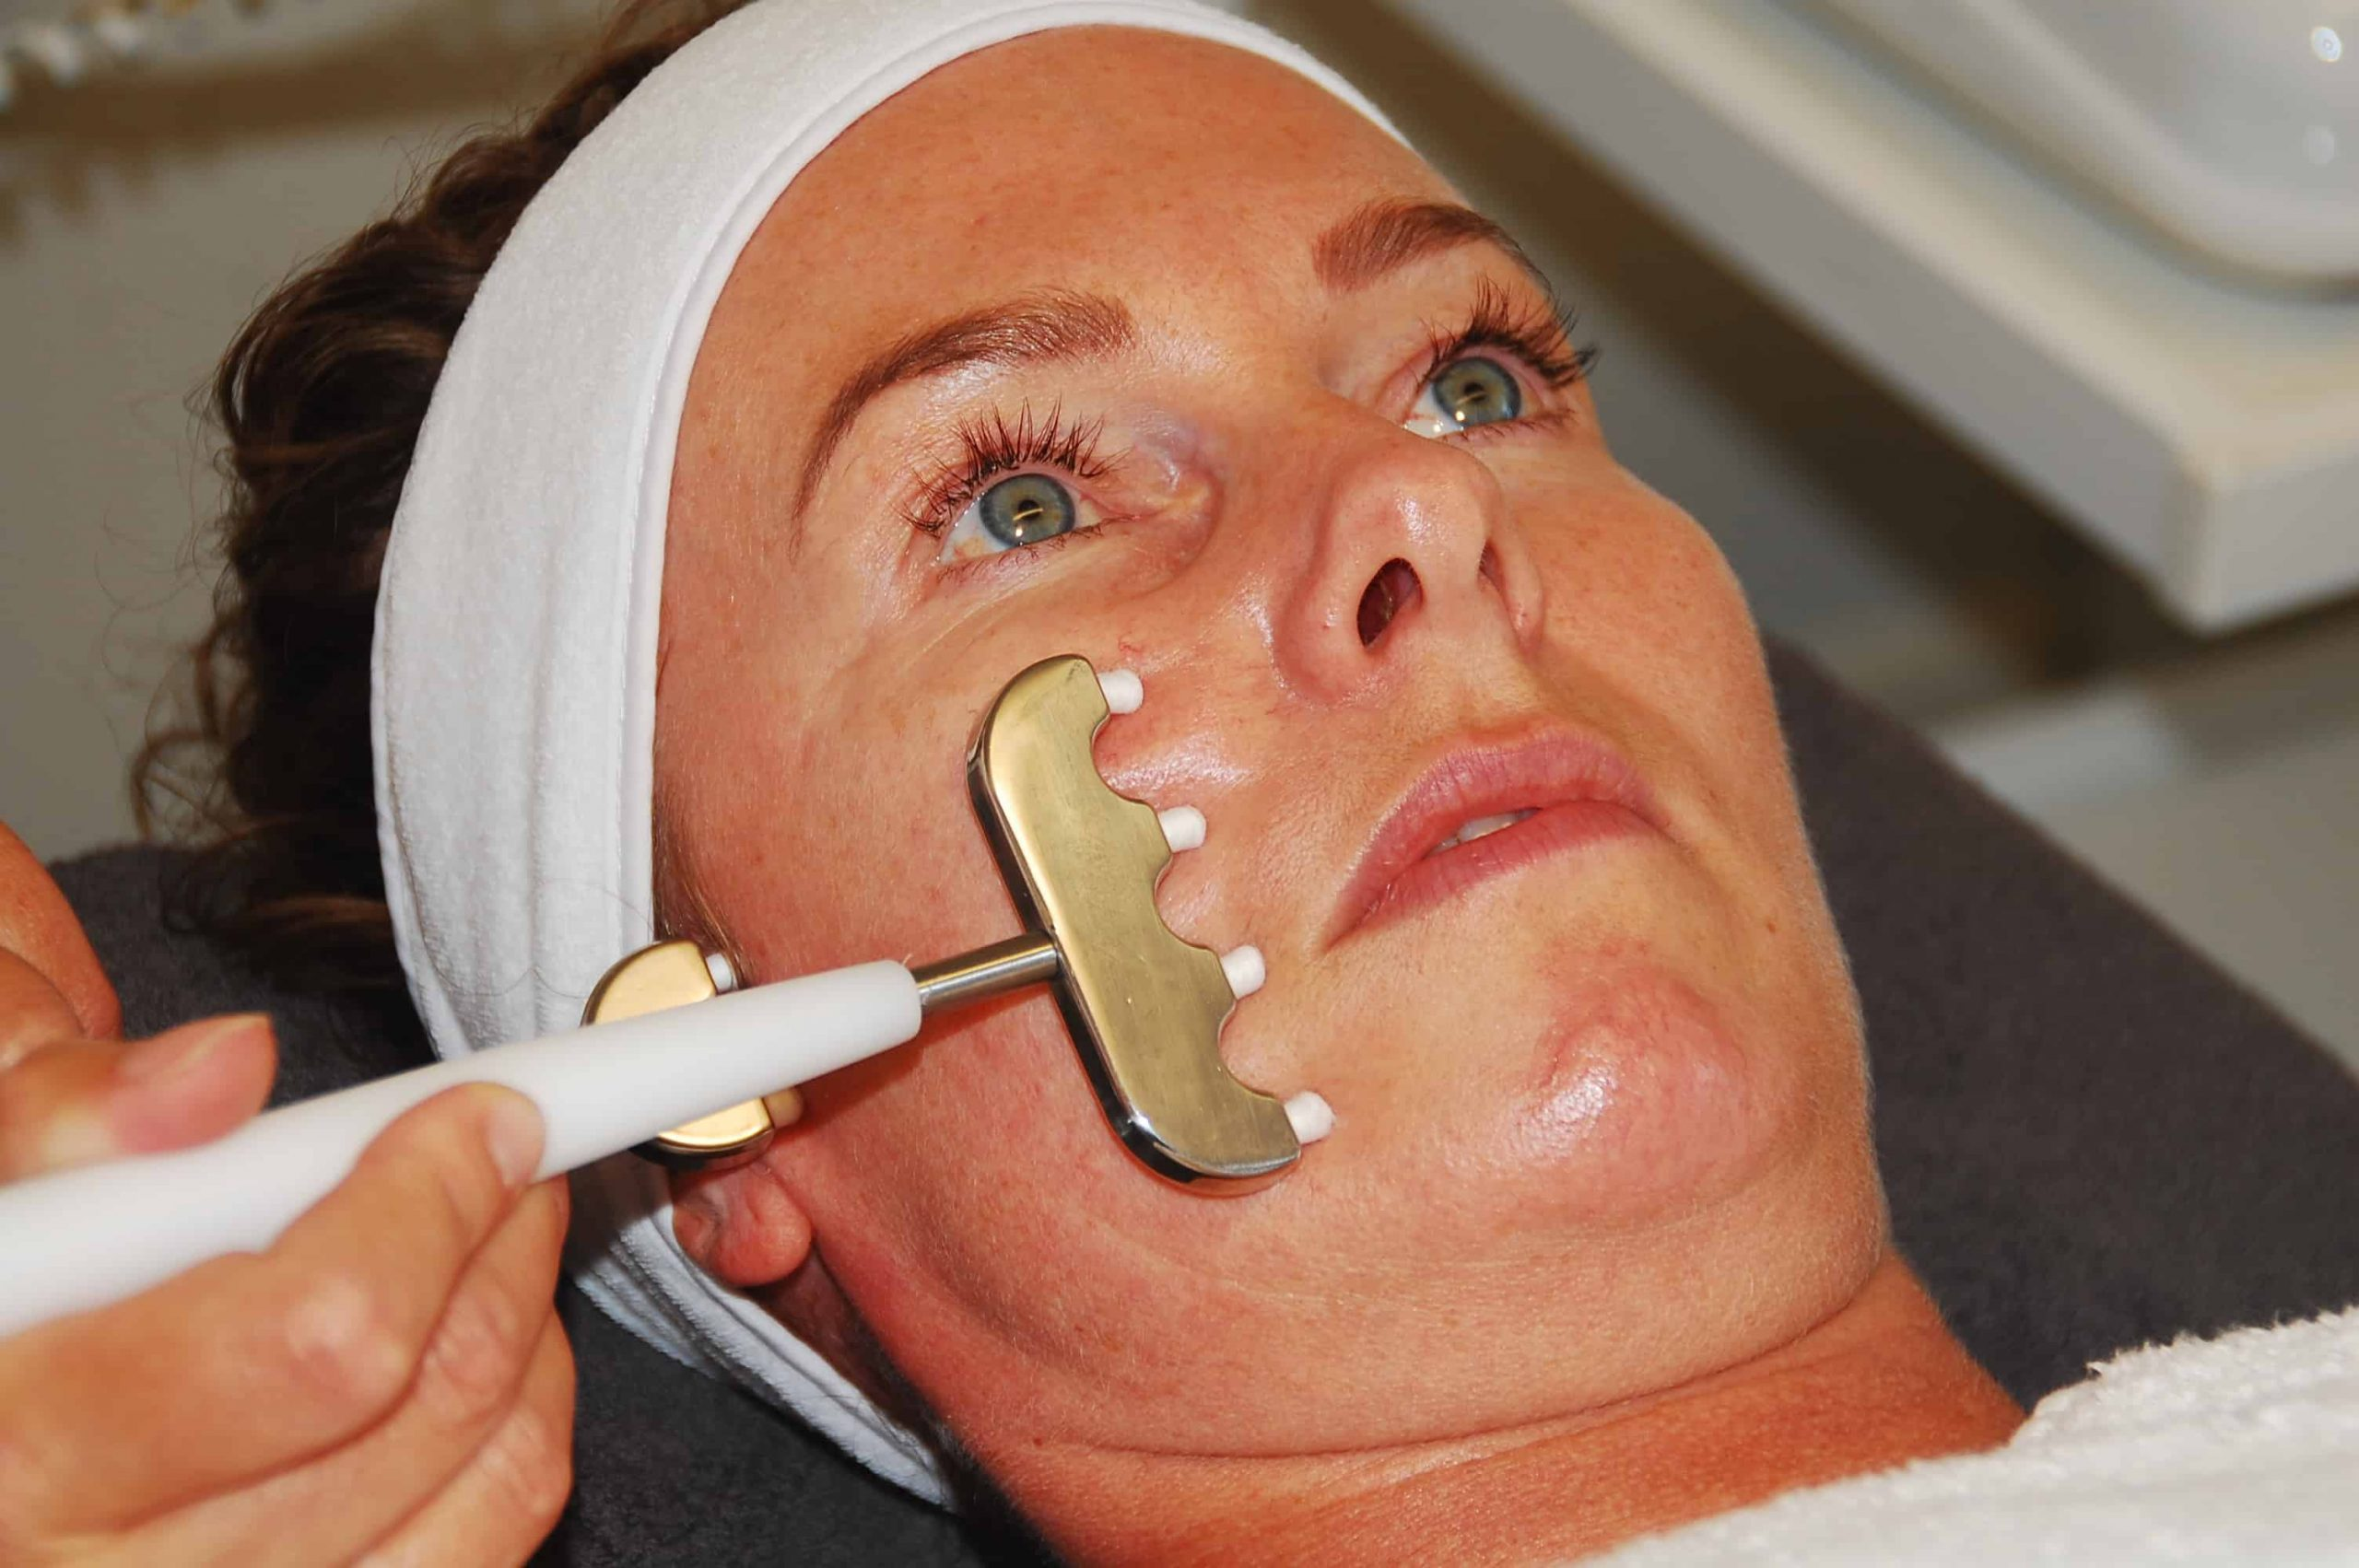 Non surgical face lifting